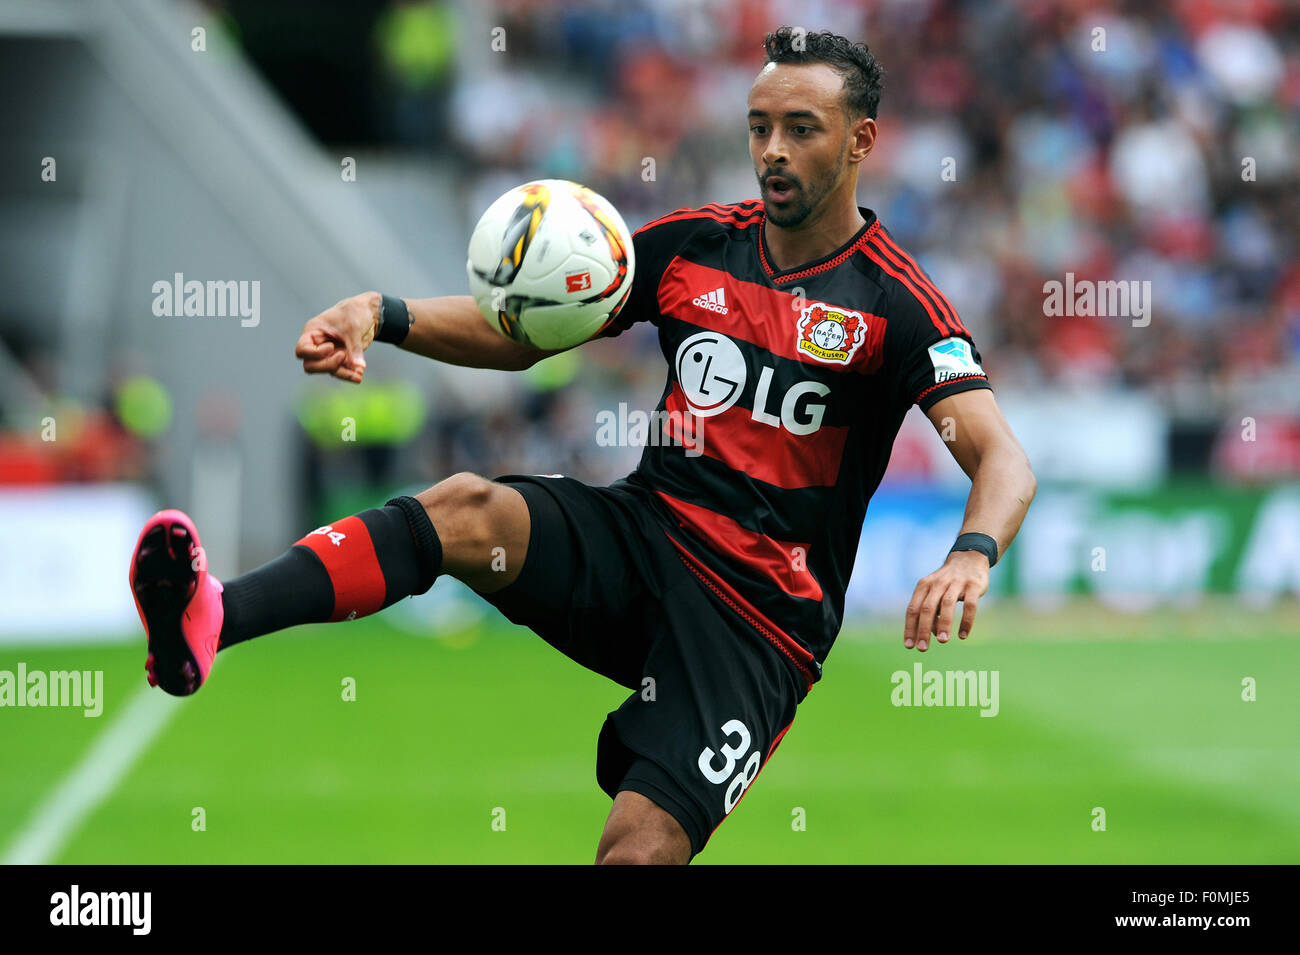 Football, Soccer, Germany, Bundesliga, Season 2015/2016, BayArena, Bayer Leverkusen vs 1899 Hoffenheim; Karim Bellarabi. - Stock Image